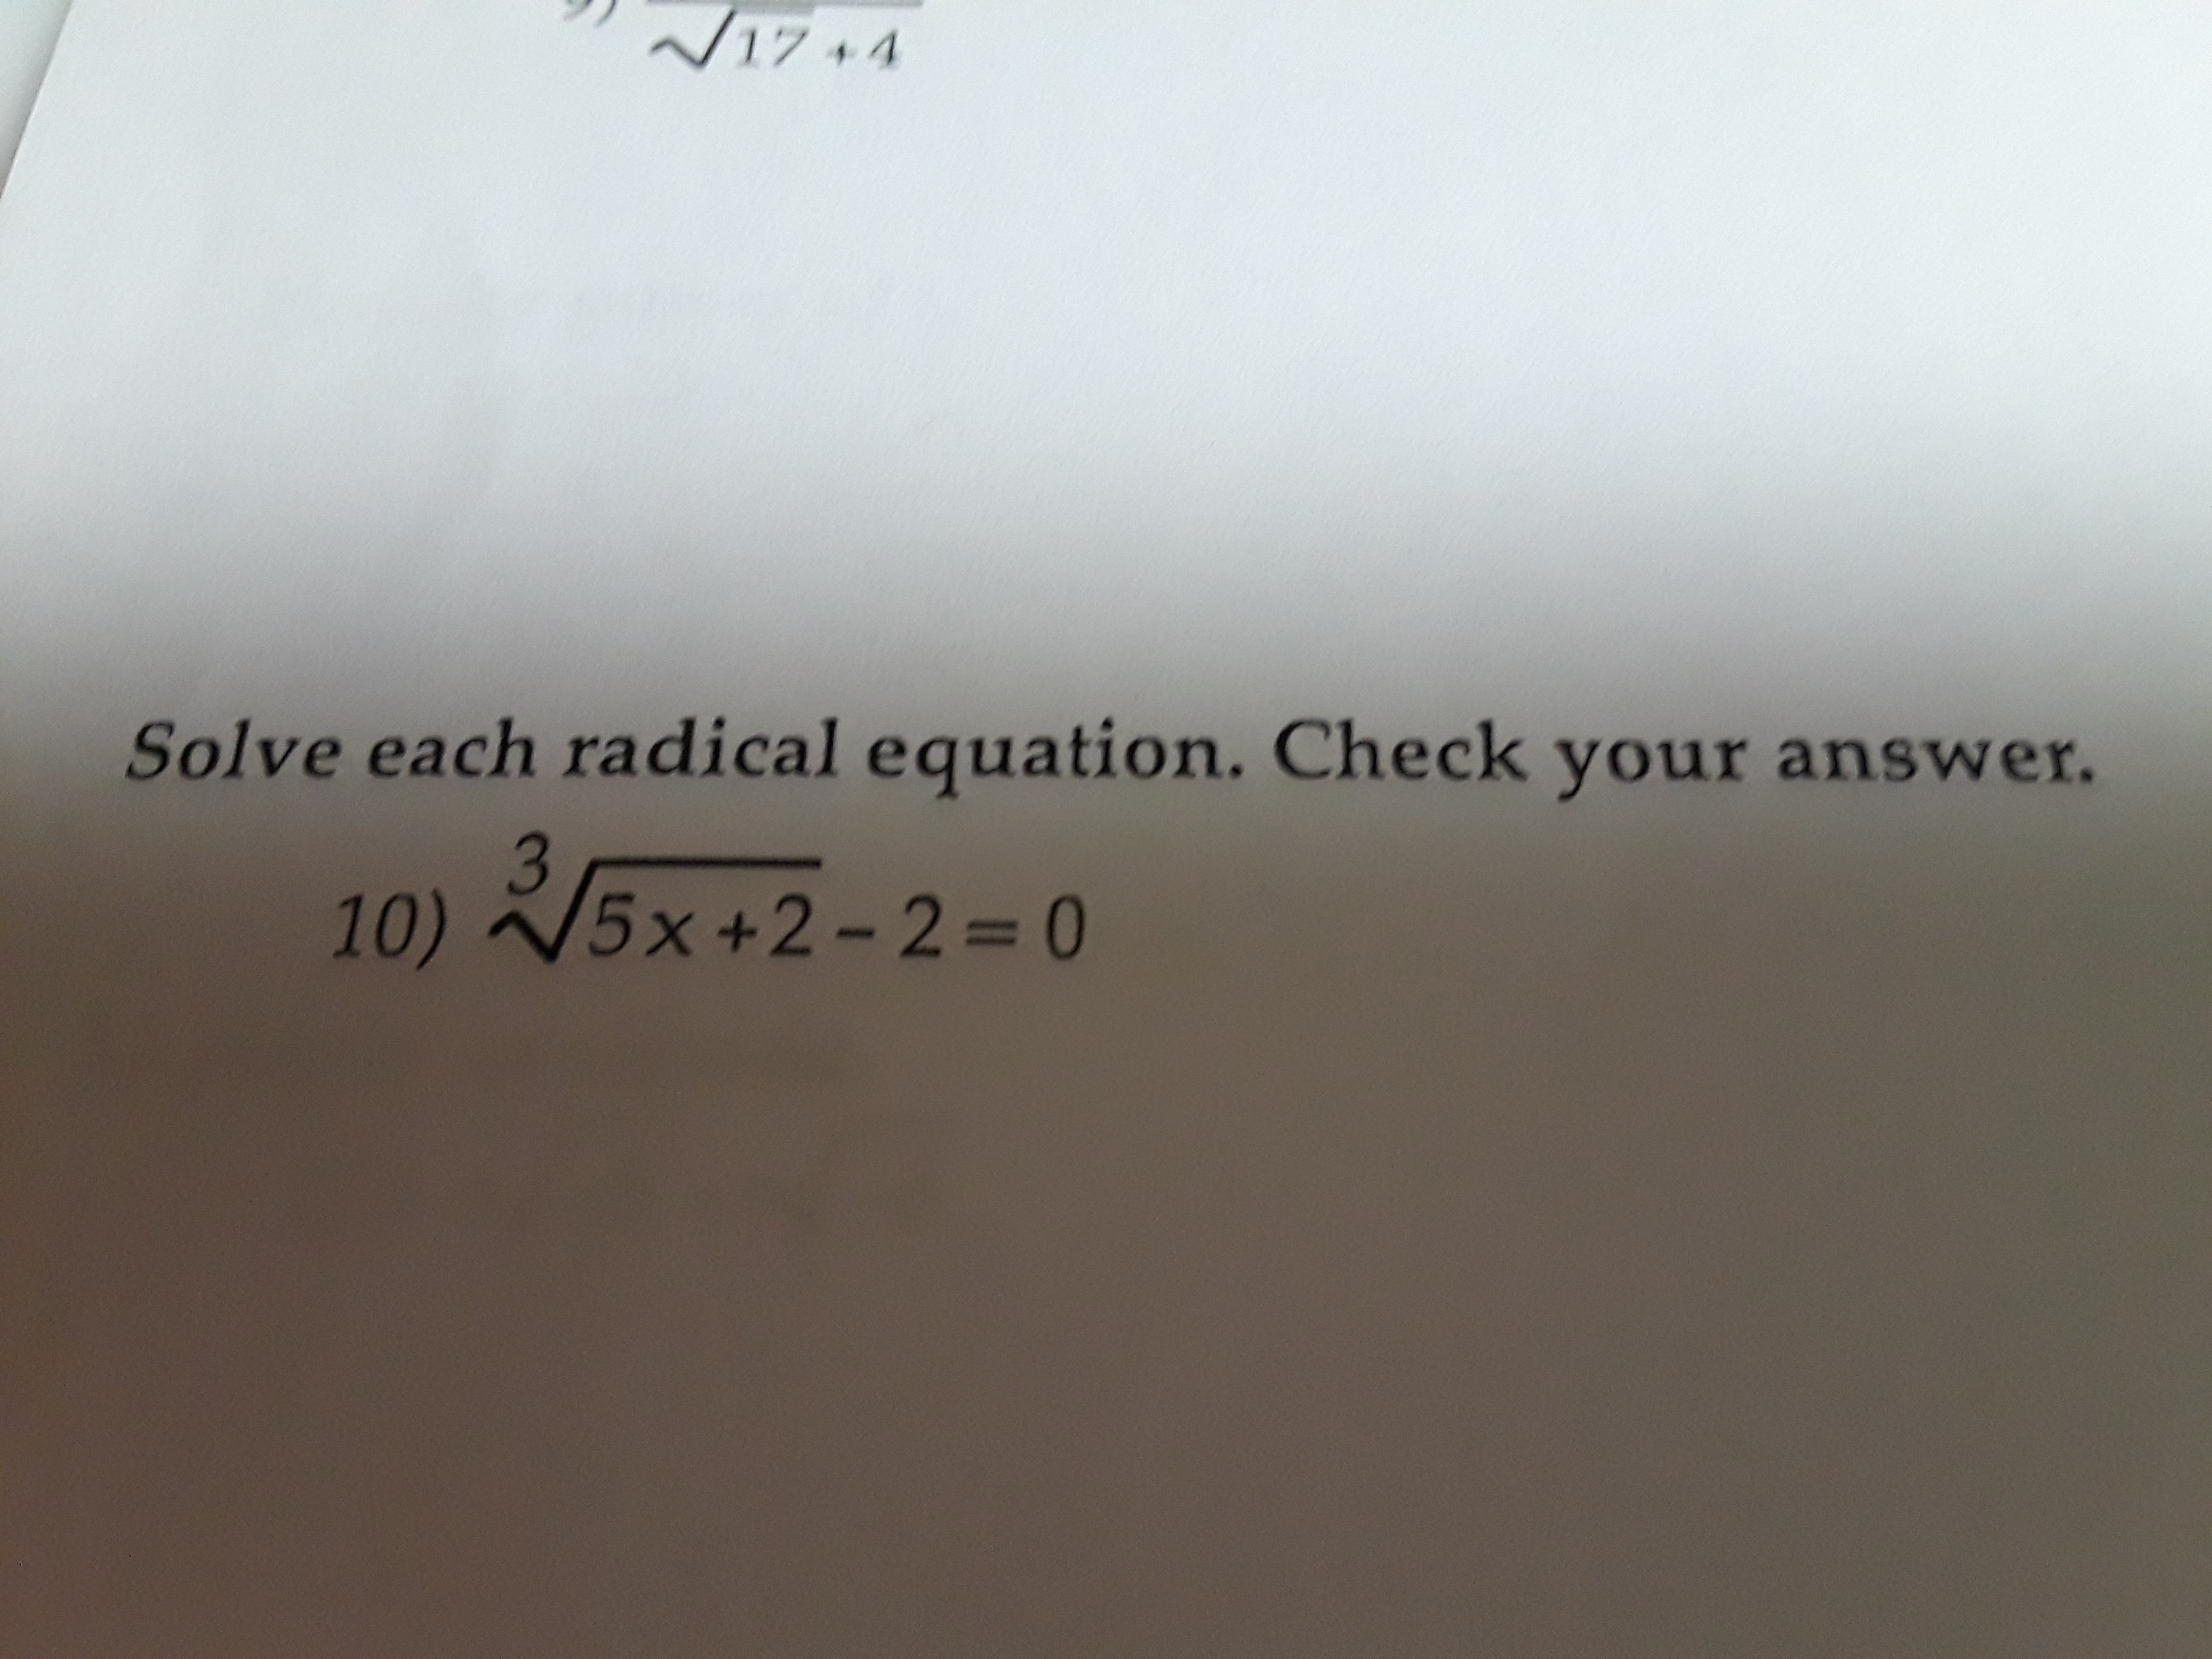 17+4 Solve each radi cal equation. Check your answer. 3 10) 5x+2-2=0